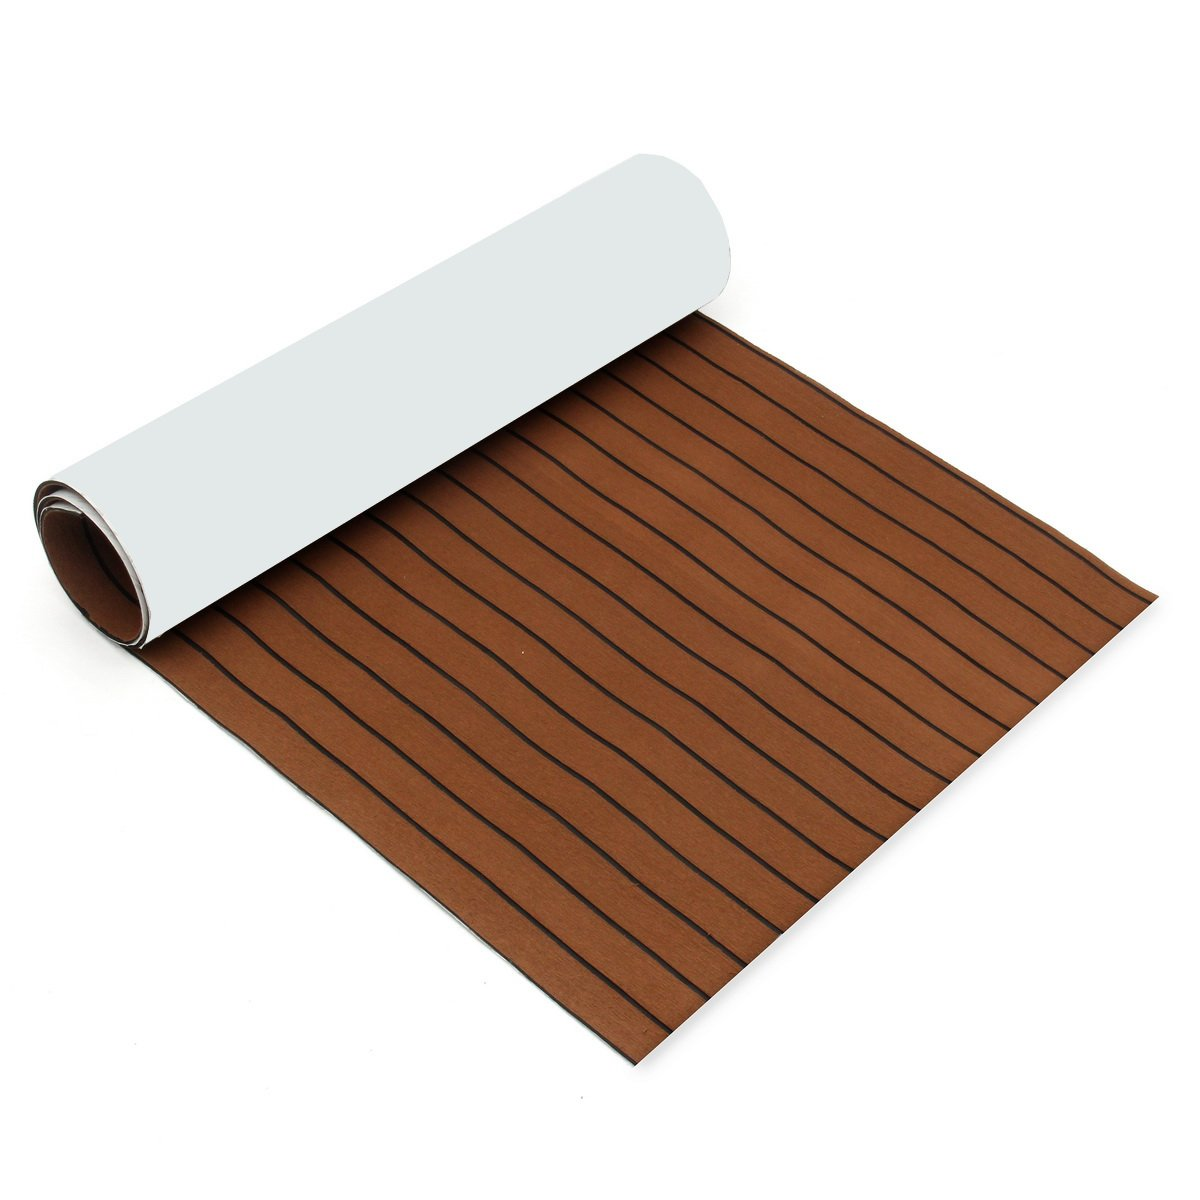 CoCocina 900x2400x5.5mm Dark Brown EVA Foam Teak Boat Flooring Sheet Yacht Synthetic Teak Decking Pad